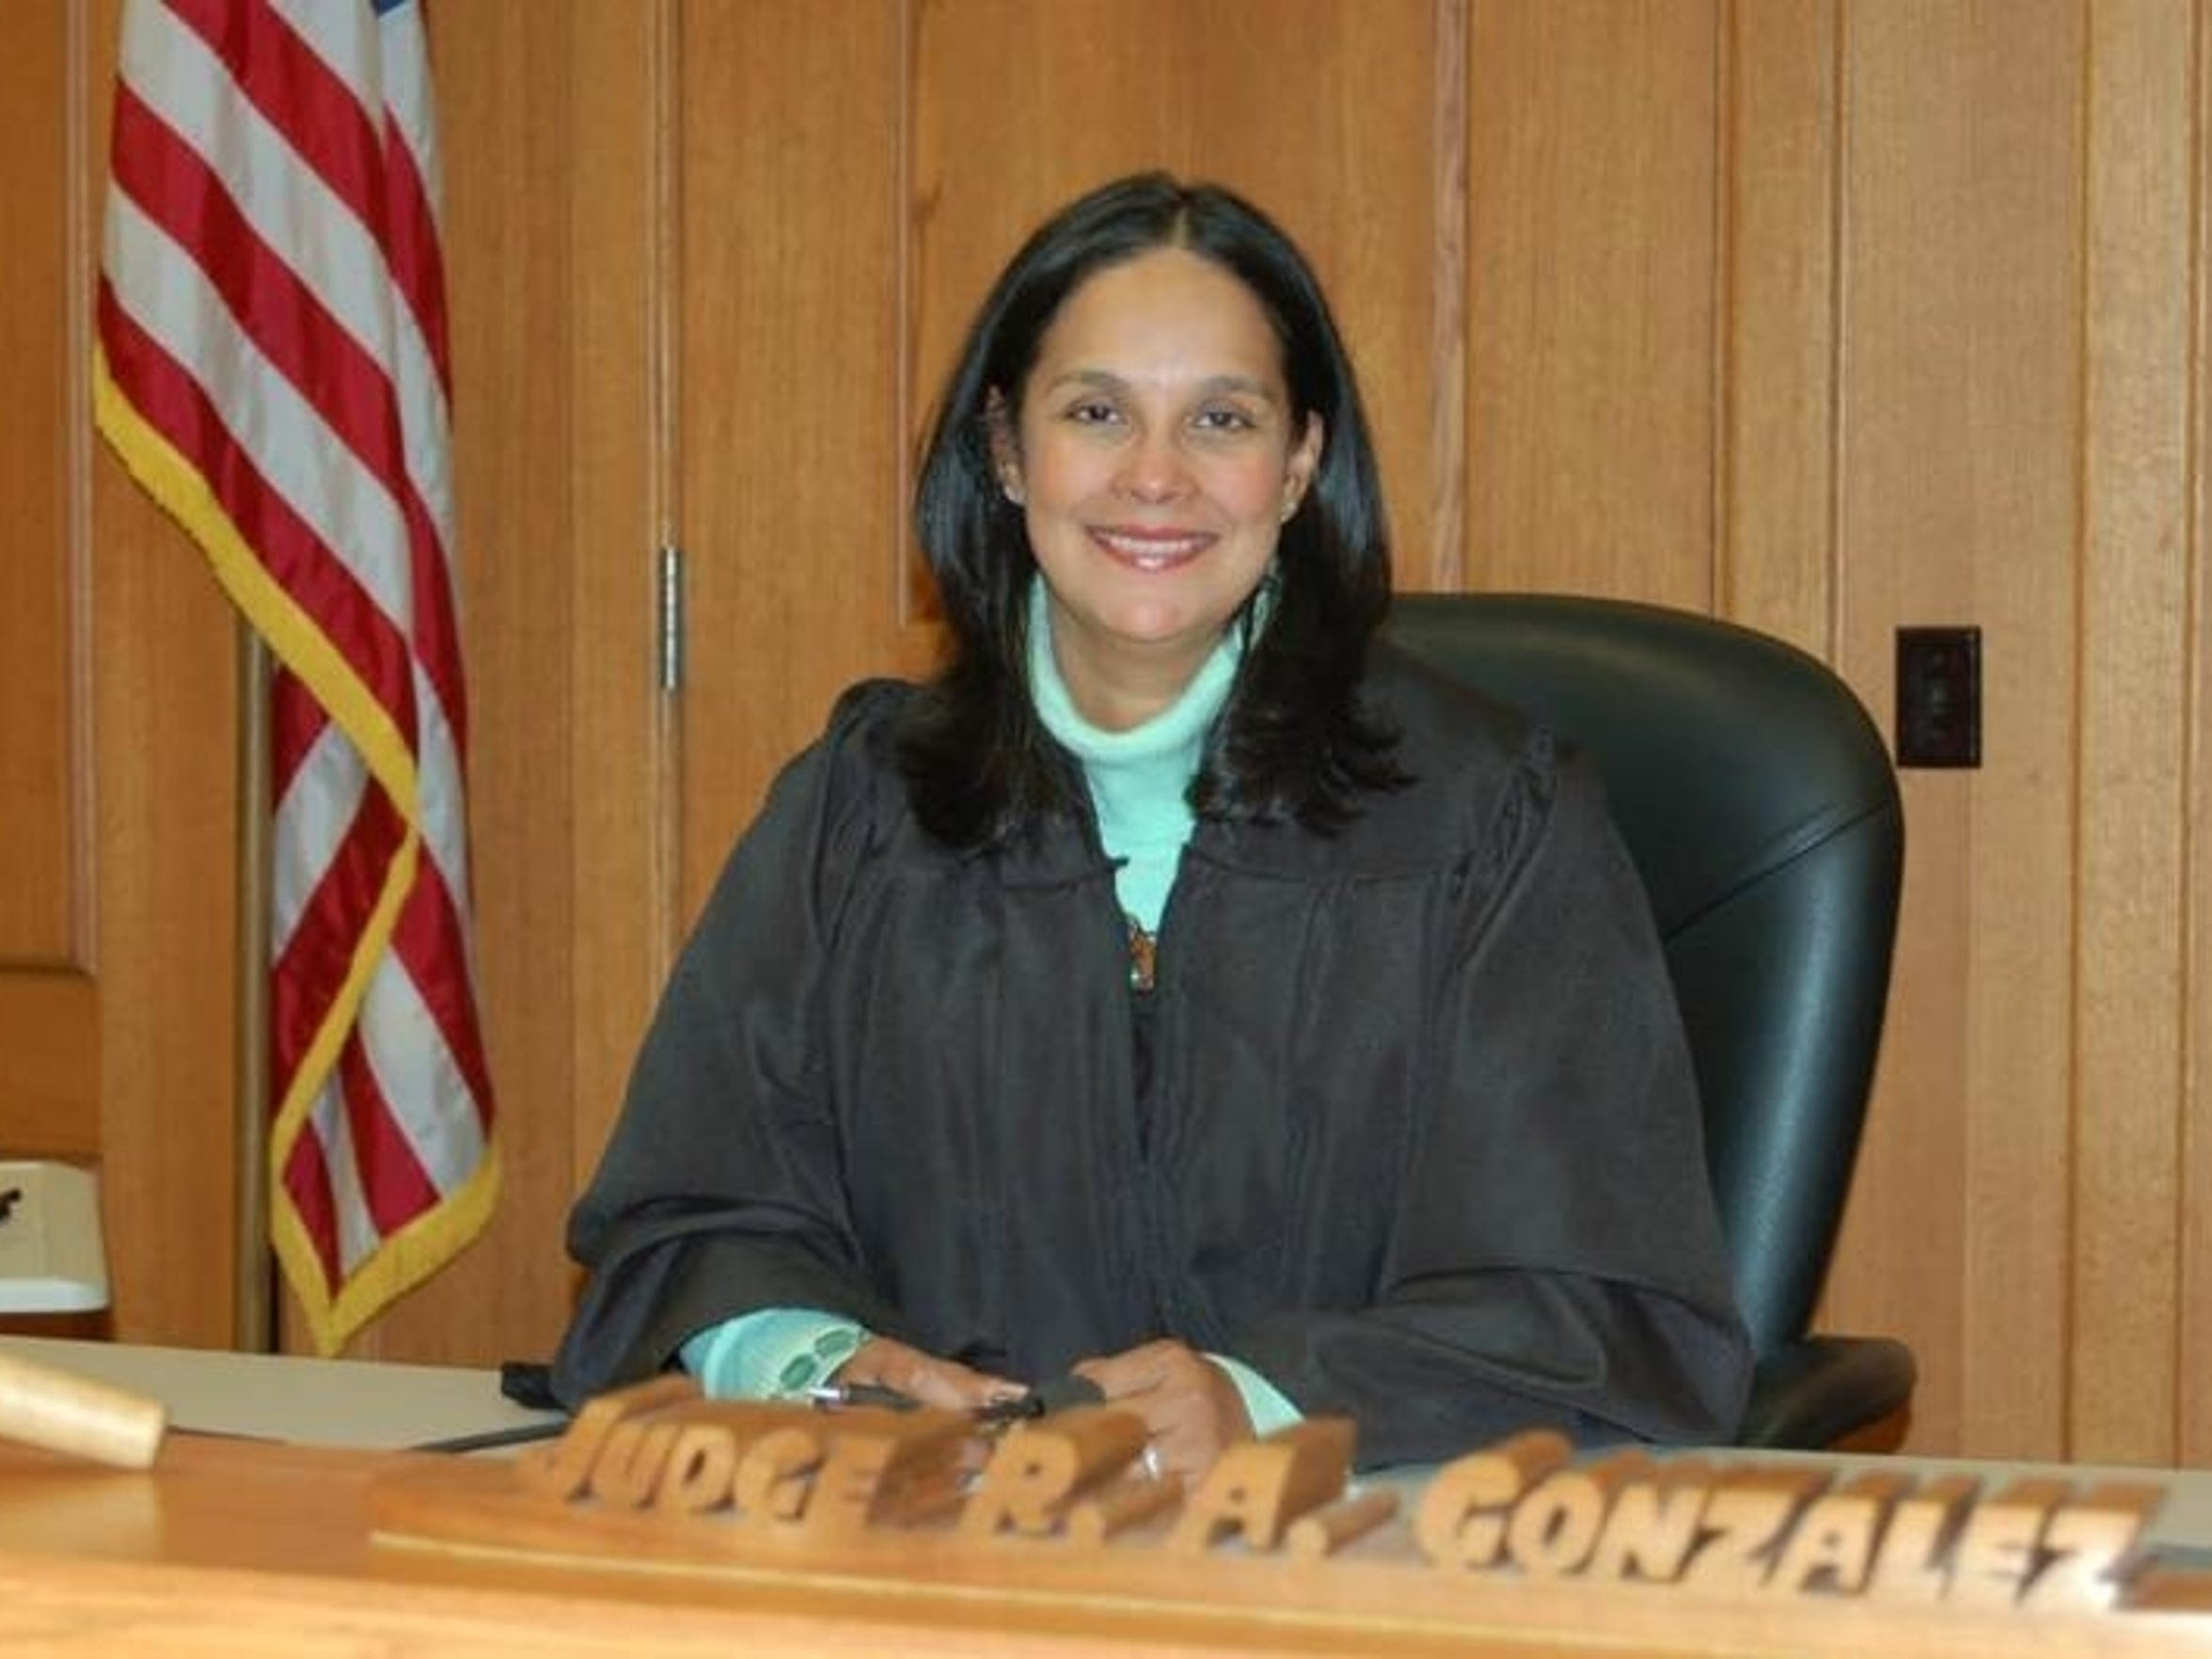 La Crosse County Judge Ramona Gonzalez sealed 38 cases